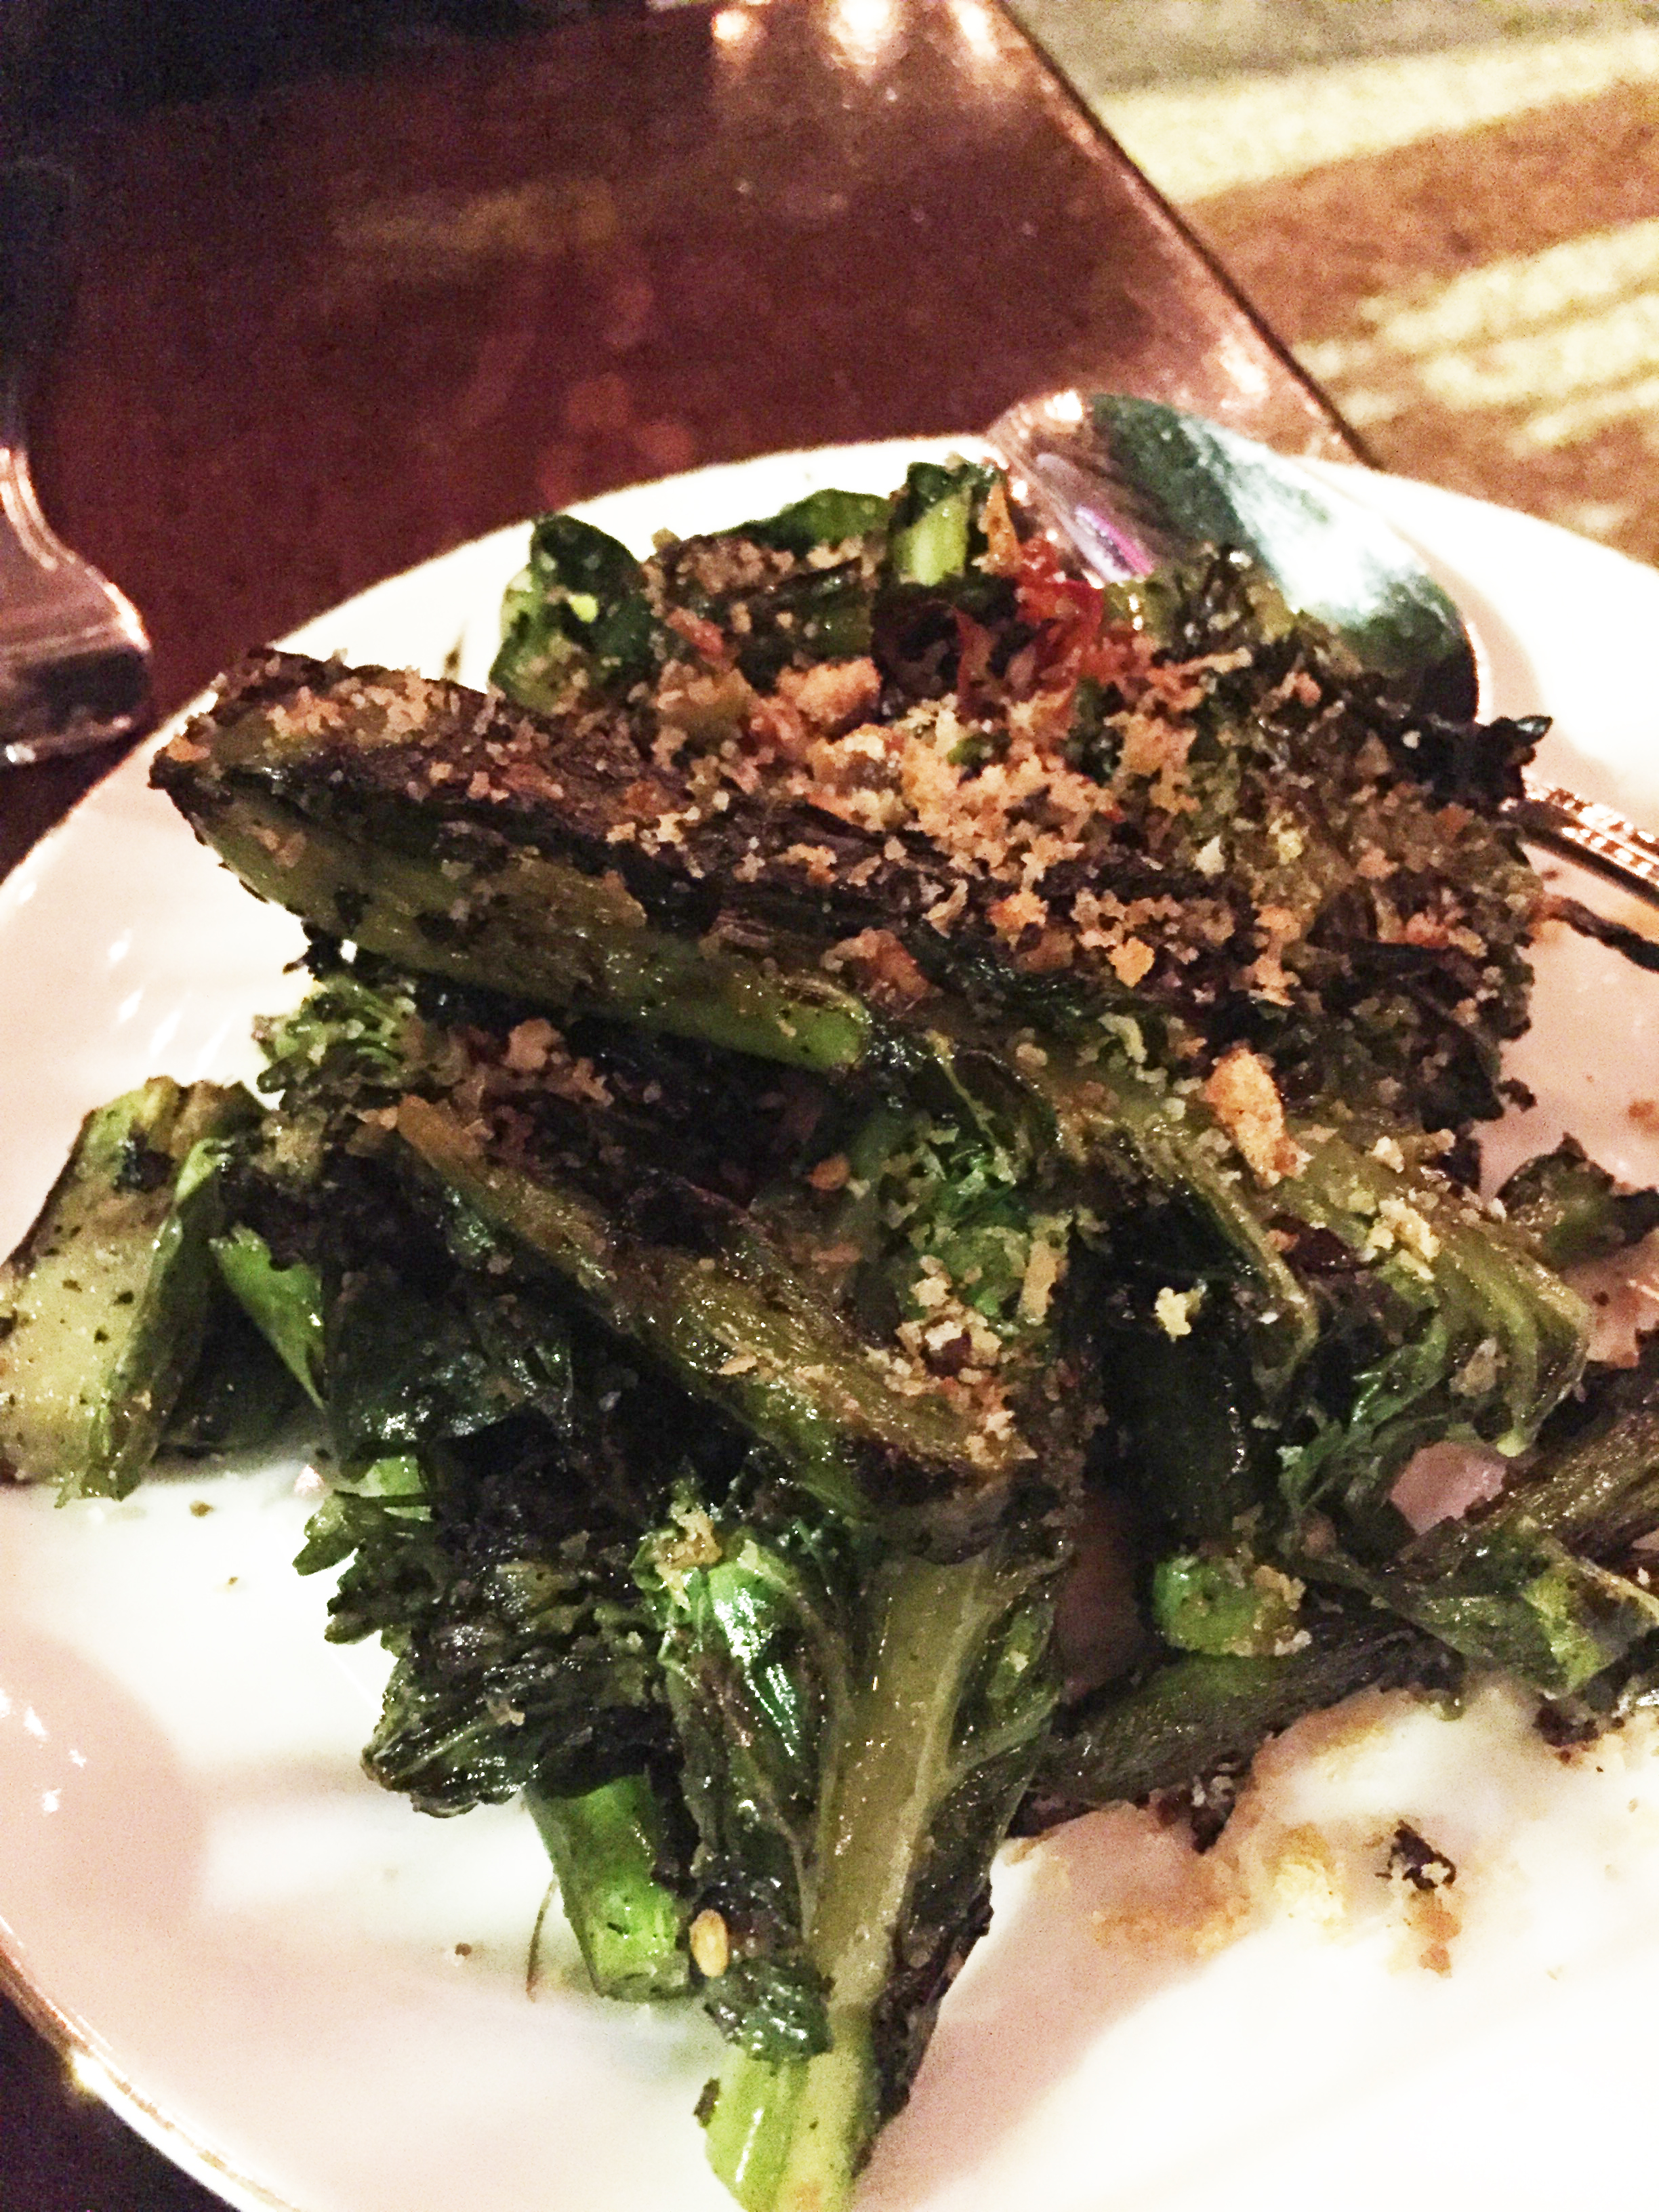 Grilled broccoli, calabrian chili, pickled garlic, mint.